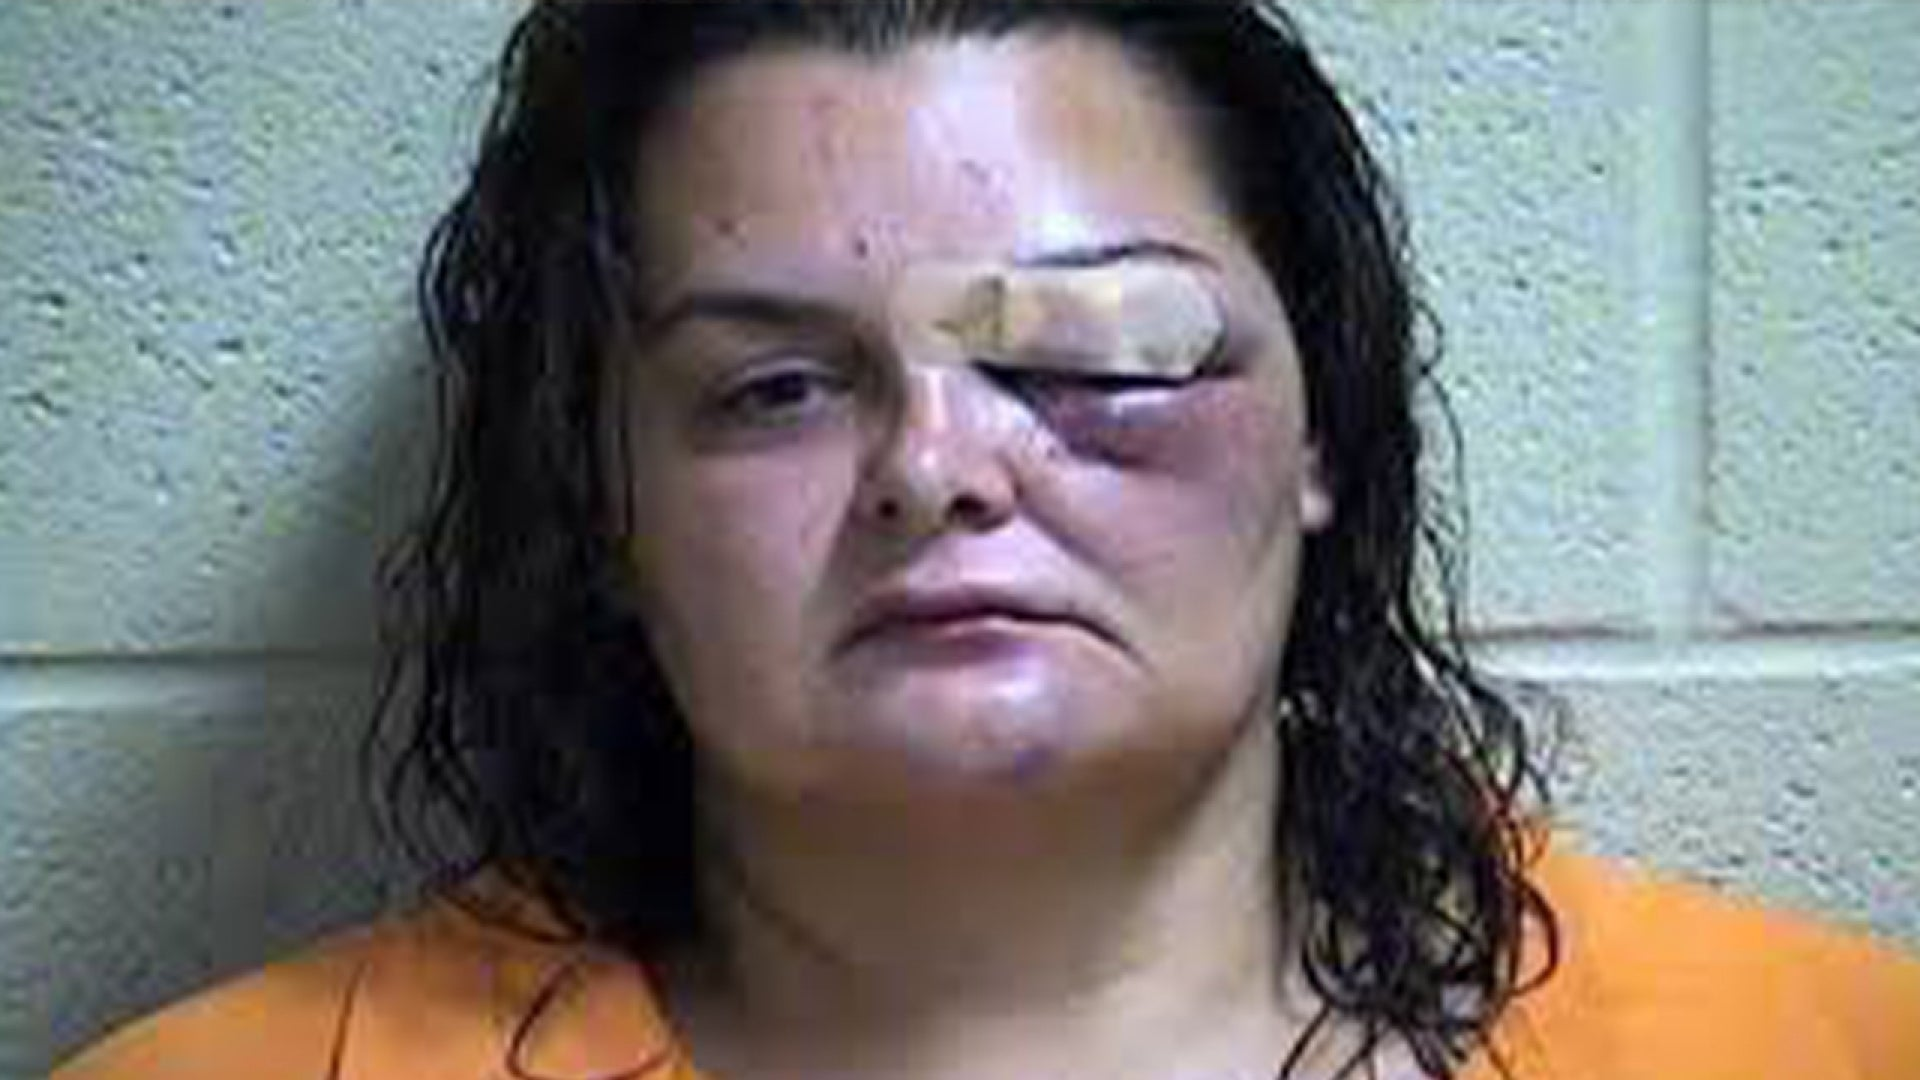 Woman Allegedly Mows Down Husband in ATV After He Asks for Divorce During Argument Over Food, Police Say